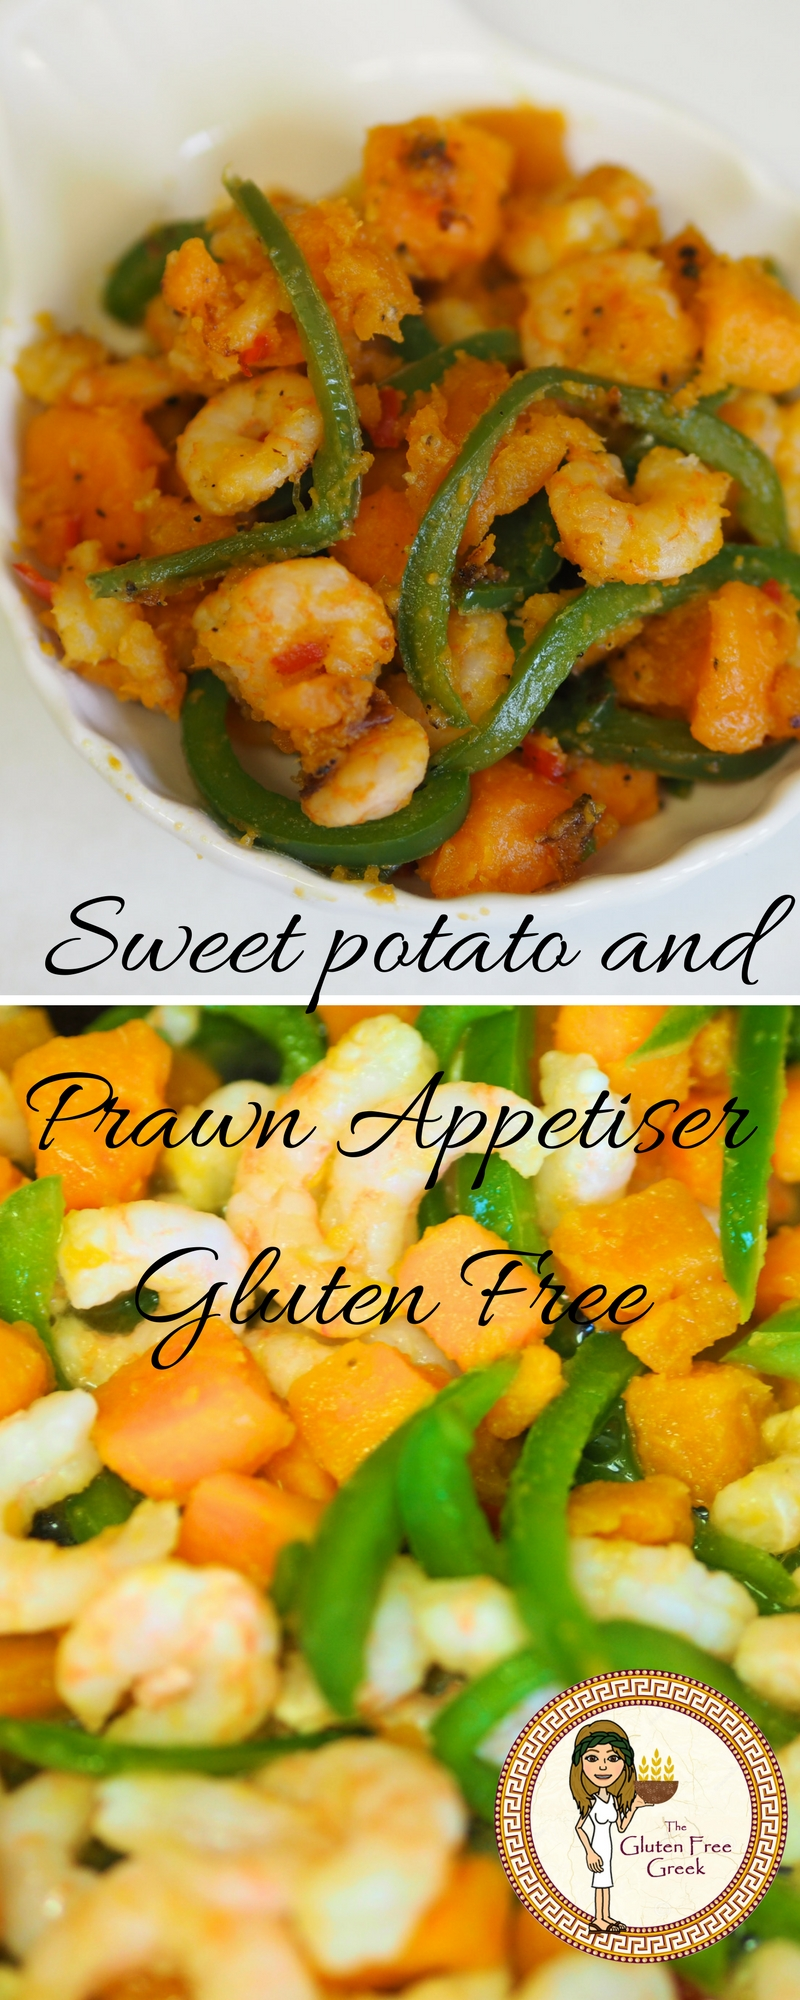 sweet potato and prawn